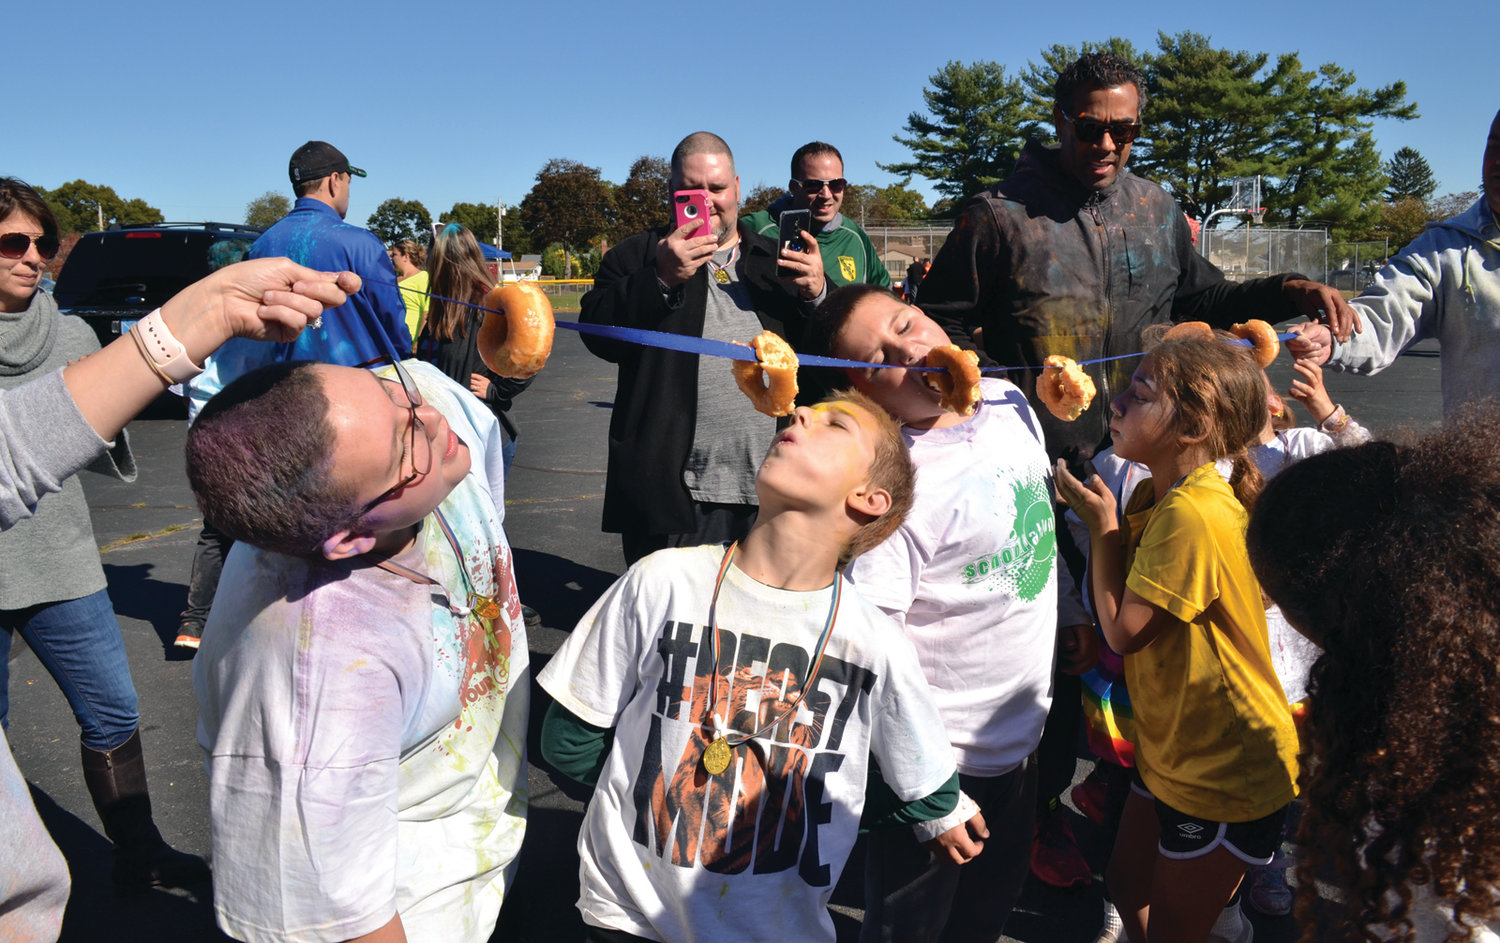 A BITE OF FUN: Students took part in a few rounds of the donut-eating contest during Saturday's Color Run, as adults at each end held a string off of which participants had to eat without using their hands.